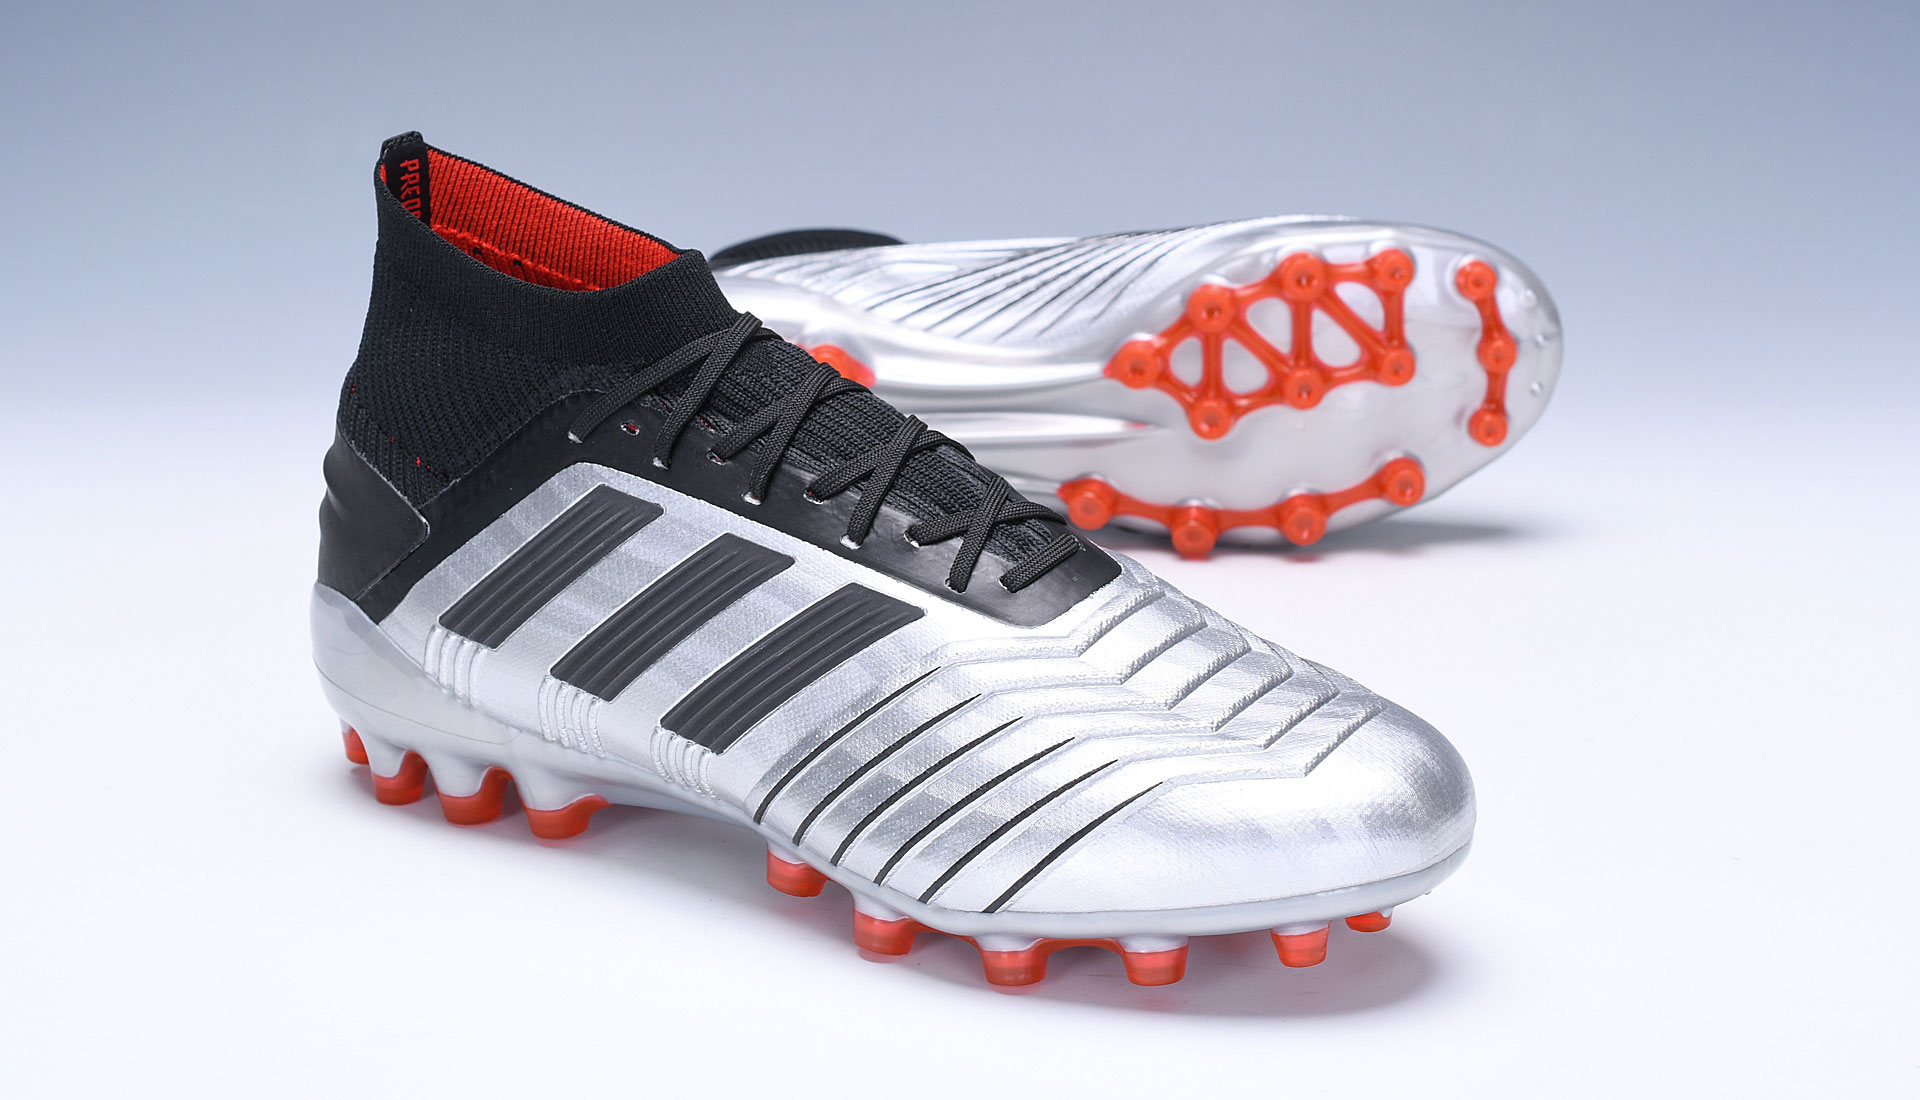 adidas Predator 19.1 AG Silver Red Football Boots Sell